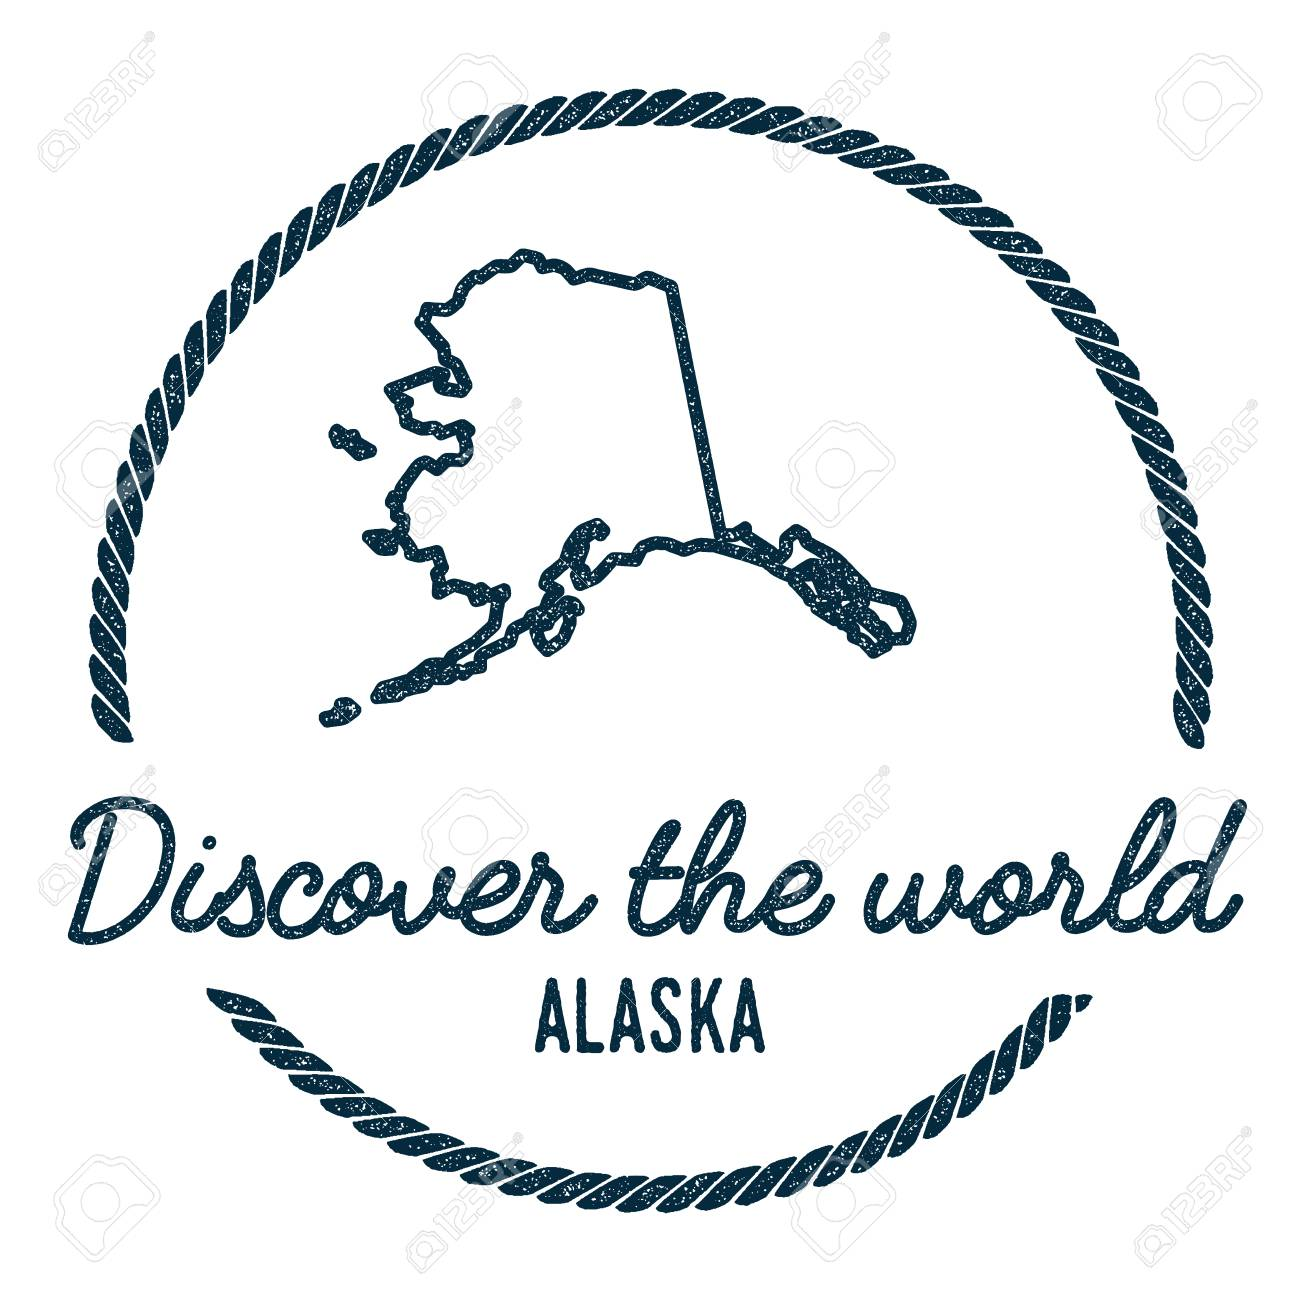 Alaska Map Outline Vintage Discover The World Rubber Stamp With